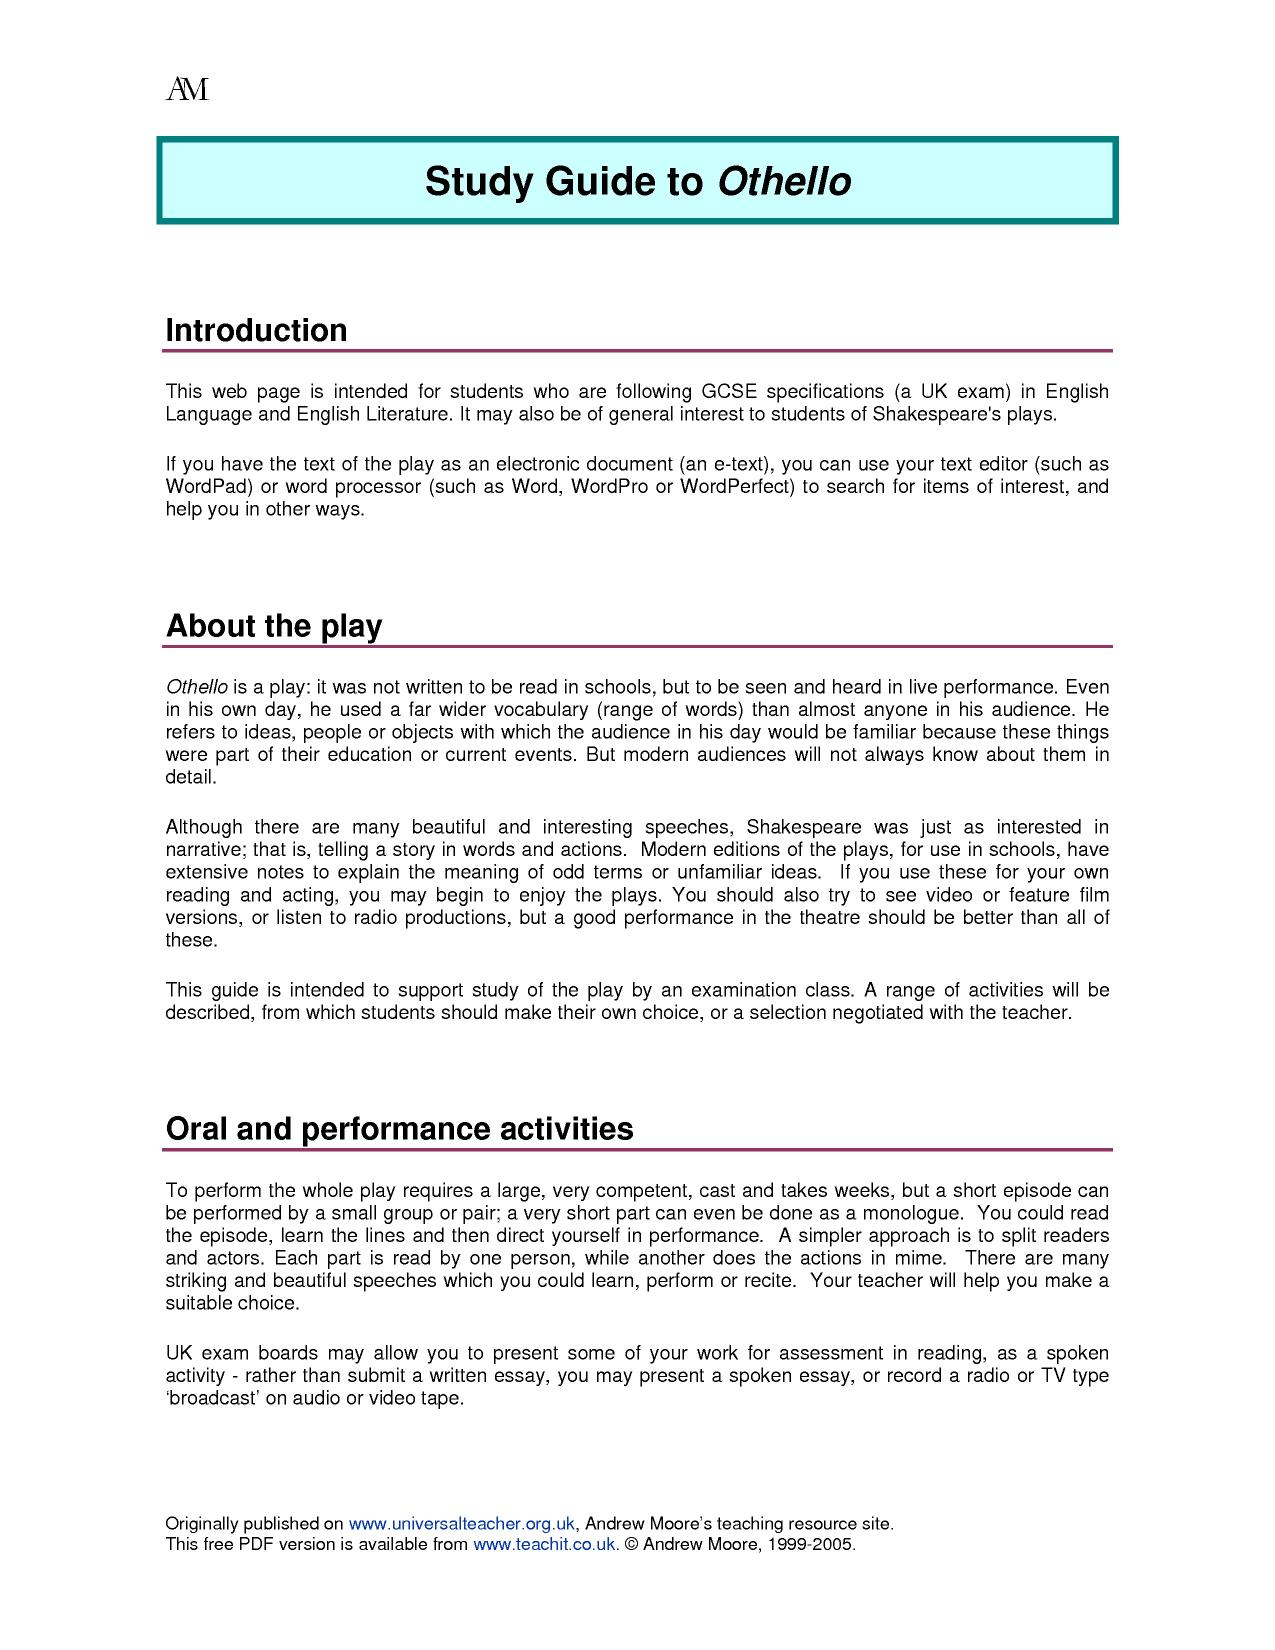 essay jealousy Sample essay words 967 abstract jealousy is a normal trait that is found in all human beings jealousy has different forms and intensity the most common form of.